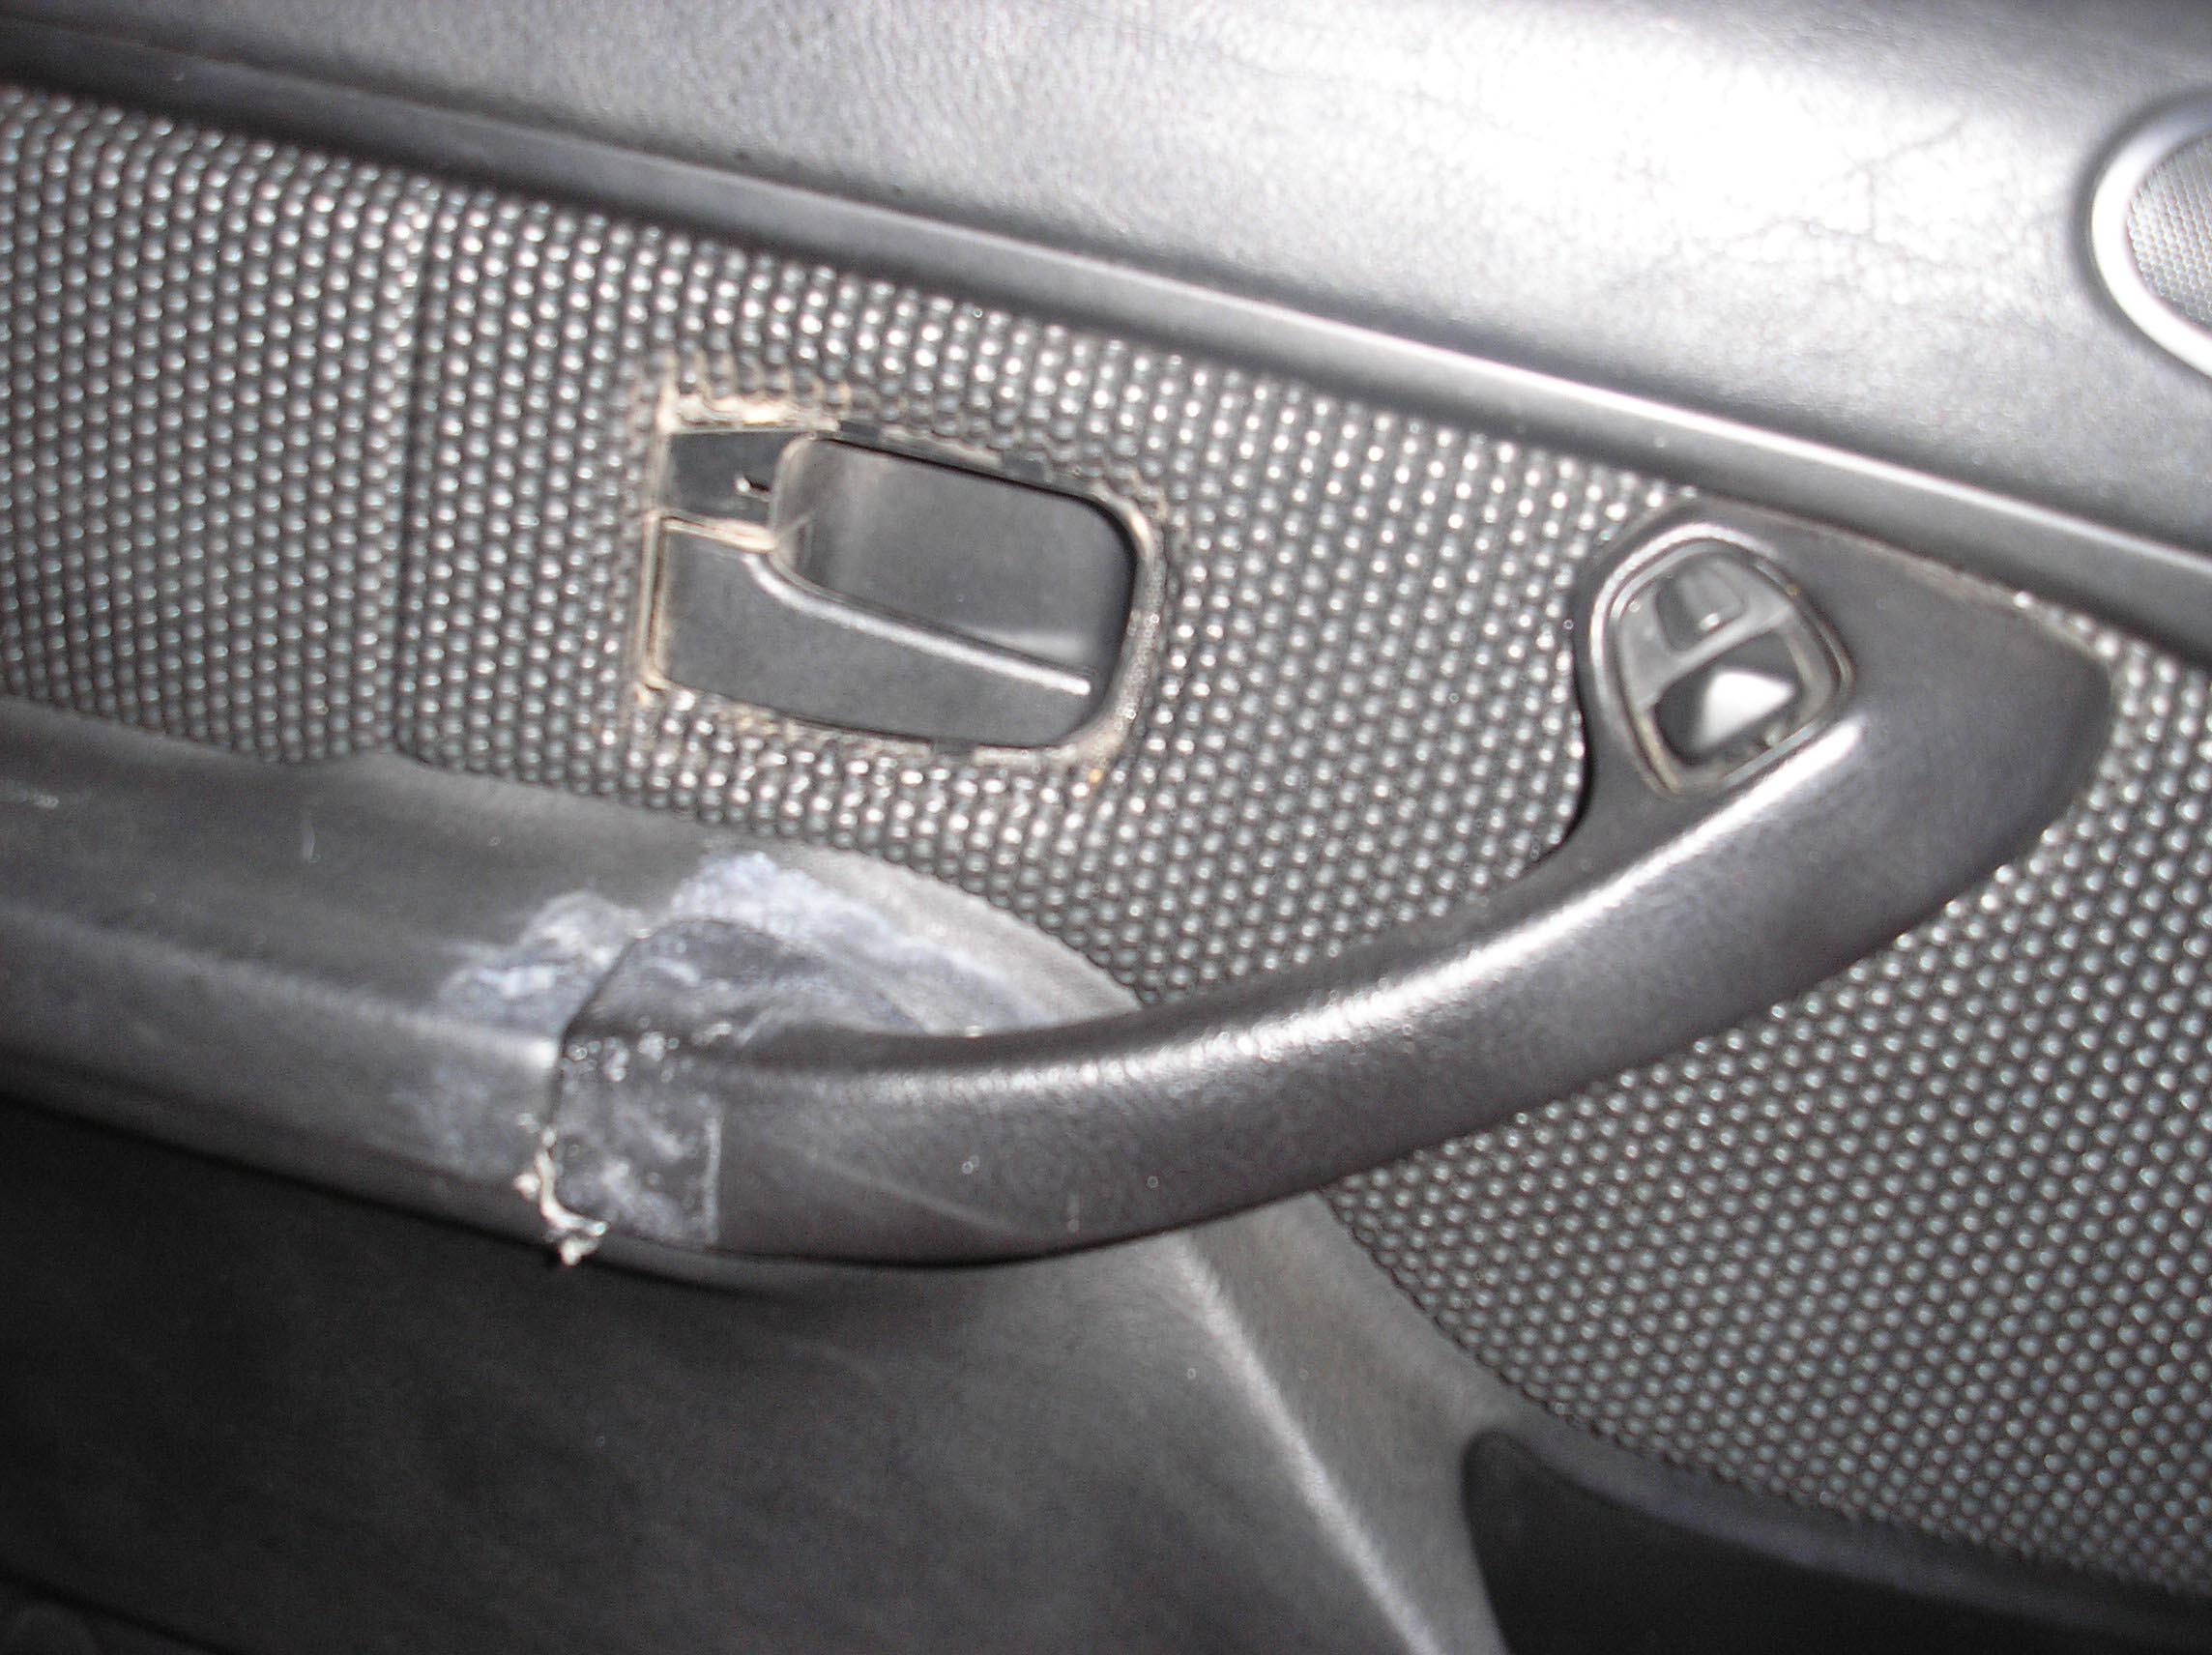 I Have A 2000 Bmw Z3 With A Broken Interior Arm Rest It Is Not The Door Handle It Is The